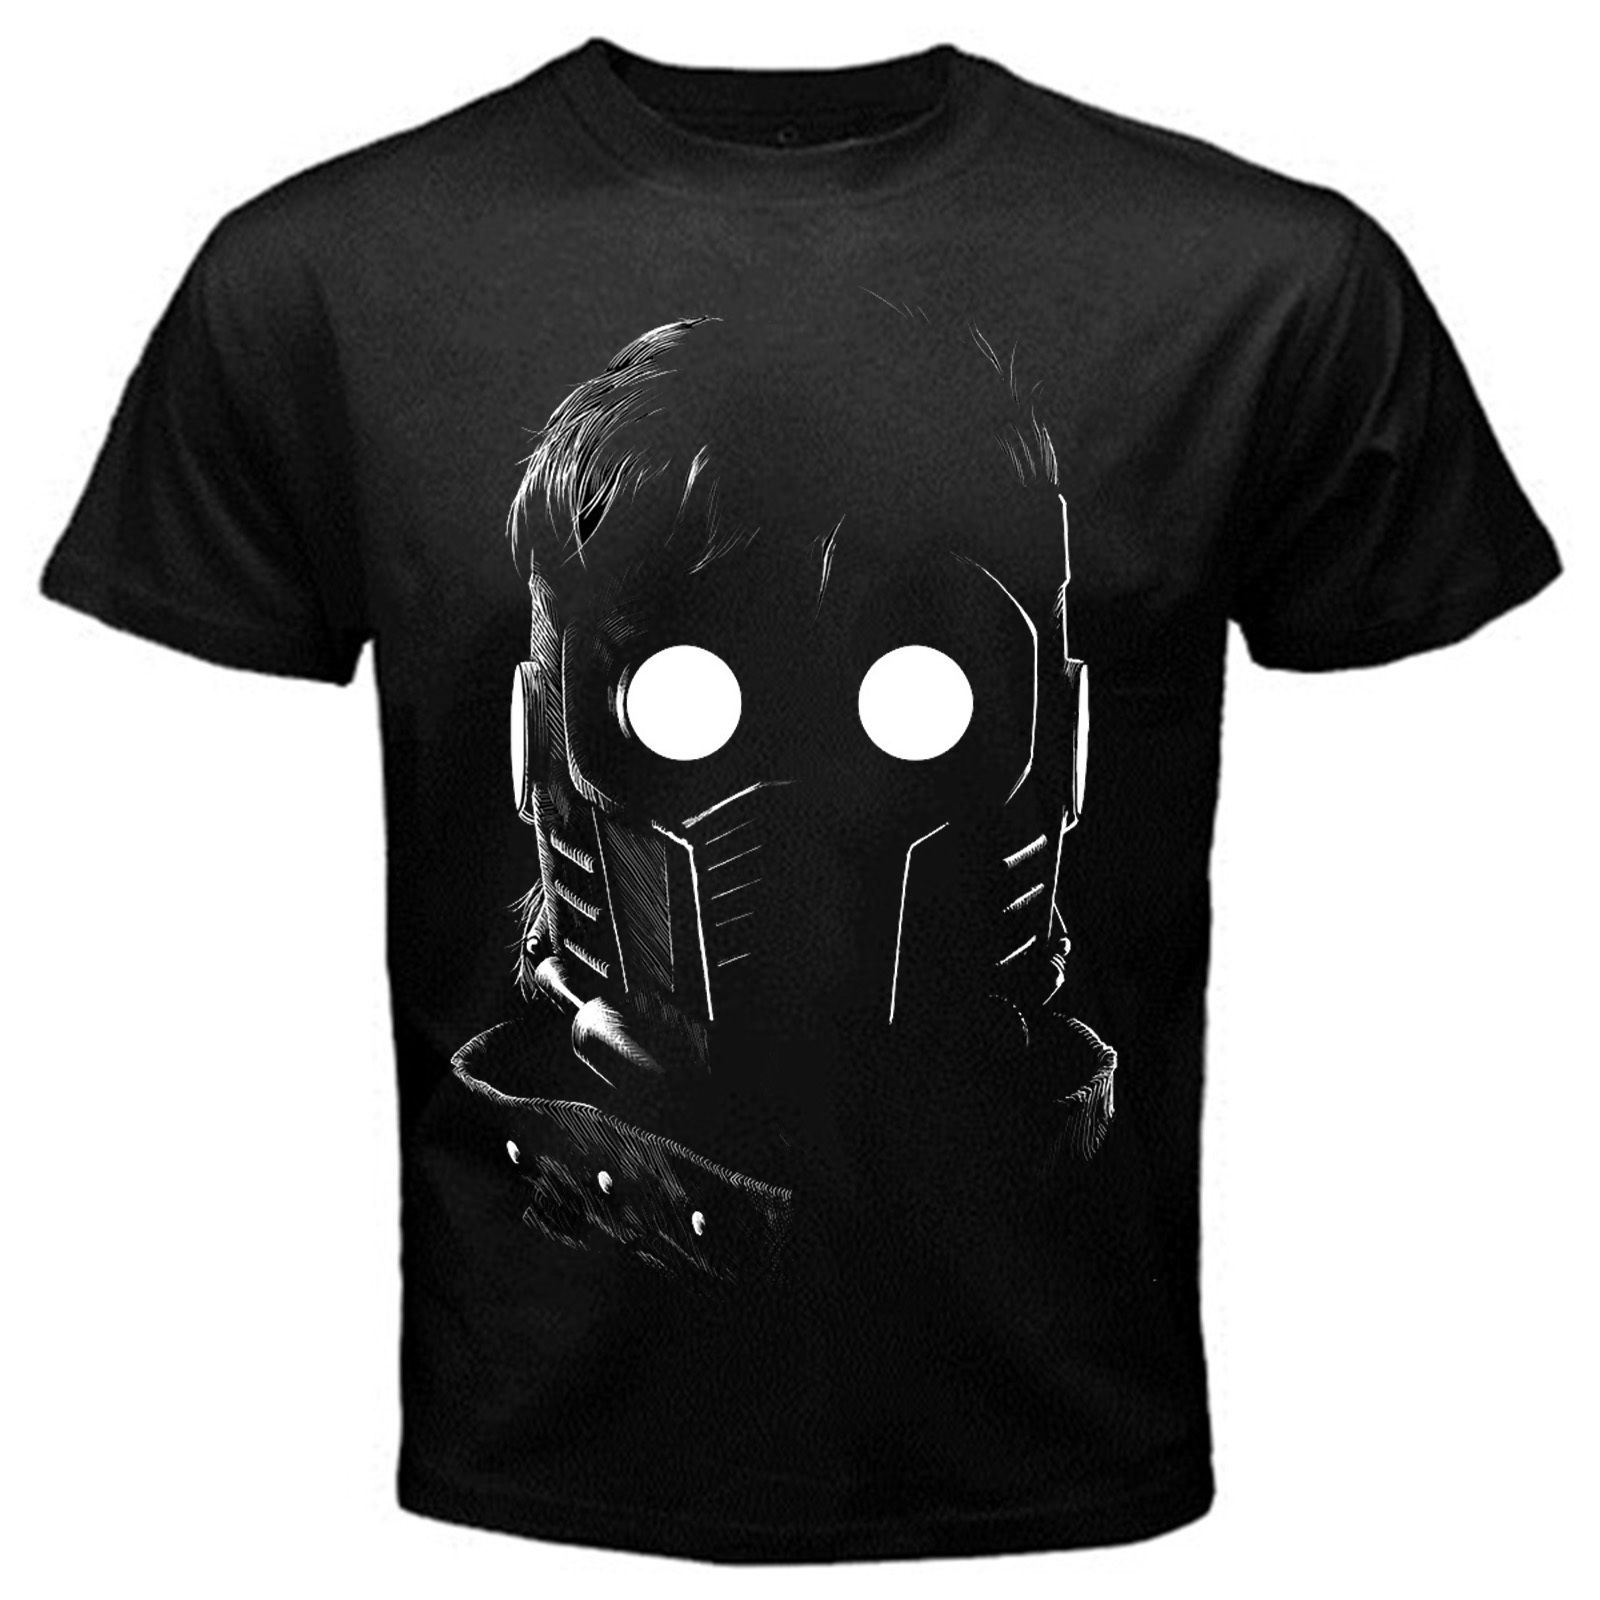 Starlord Guardian of the Galaxy movie cartoon T-Shirt Black Basic Tee Tee Shirt Hipster Harajuku Brand Clothing T-Shirt